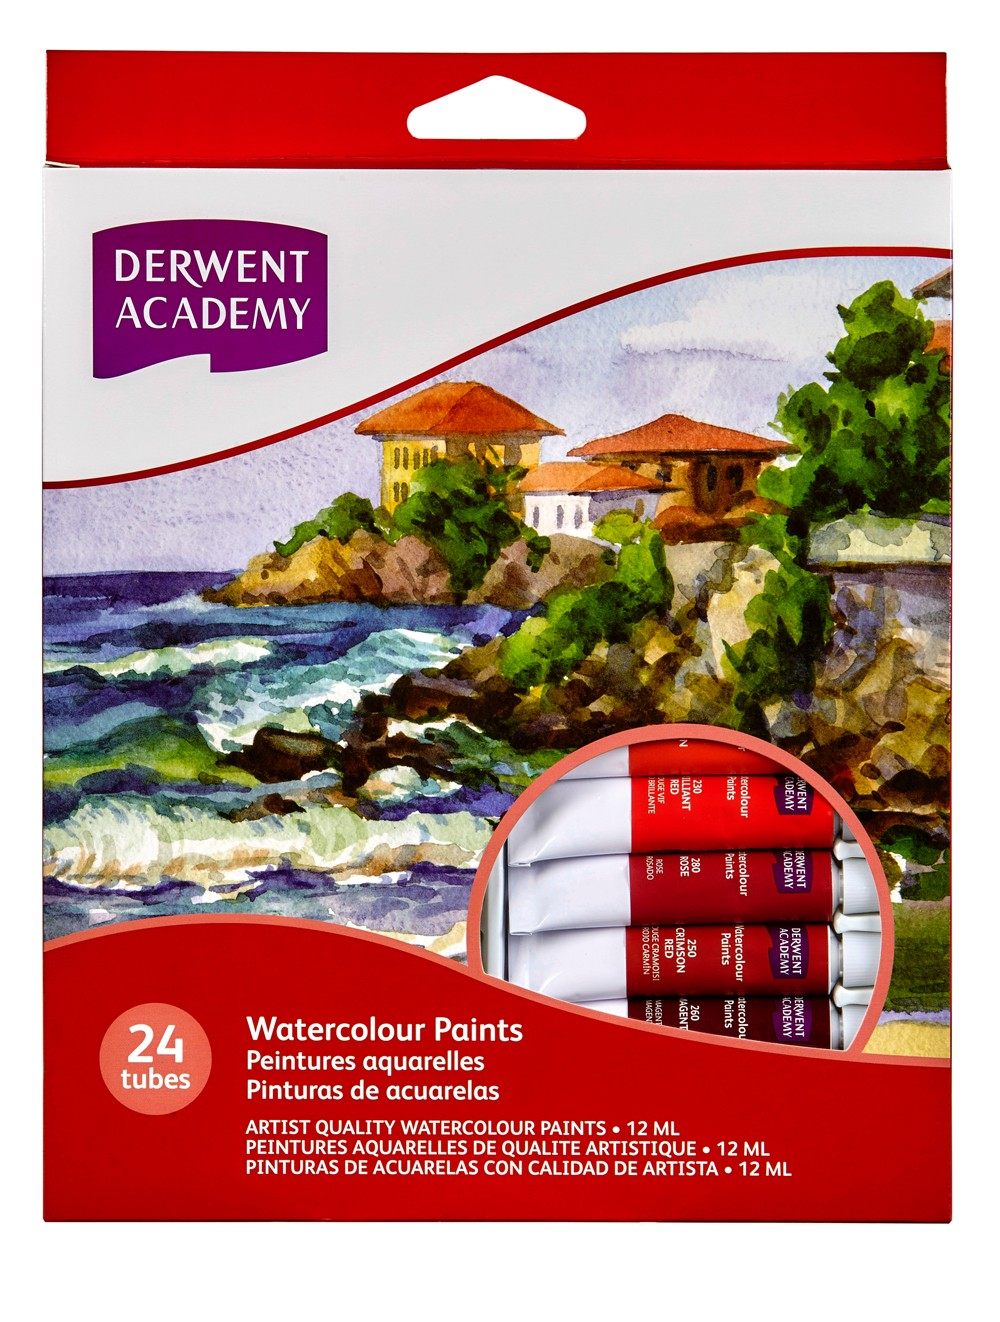 DERWENT ACADEMY WATERCOLOUR PAINT 12 ML 24PK